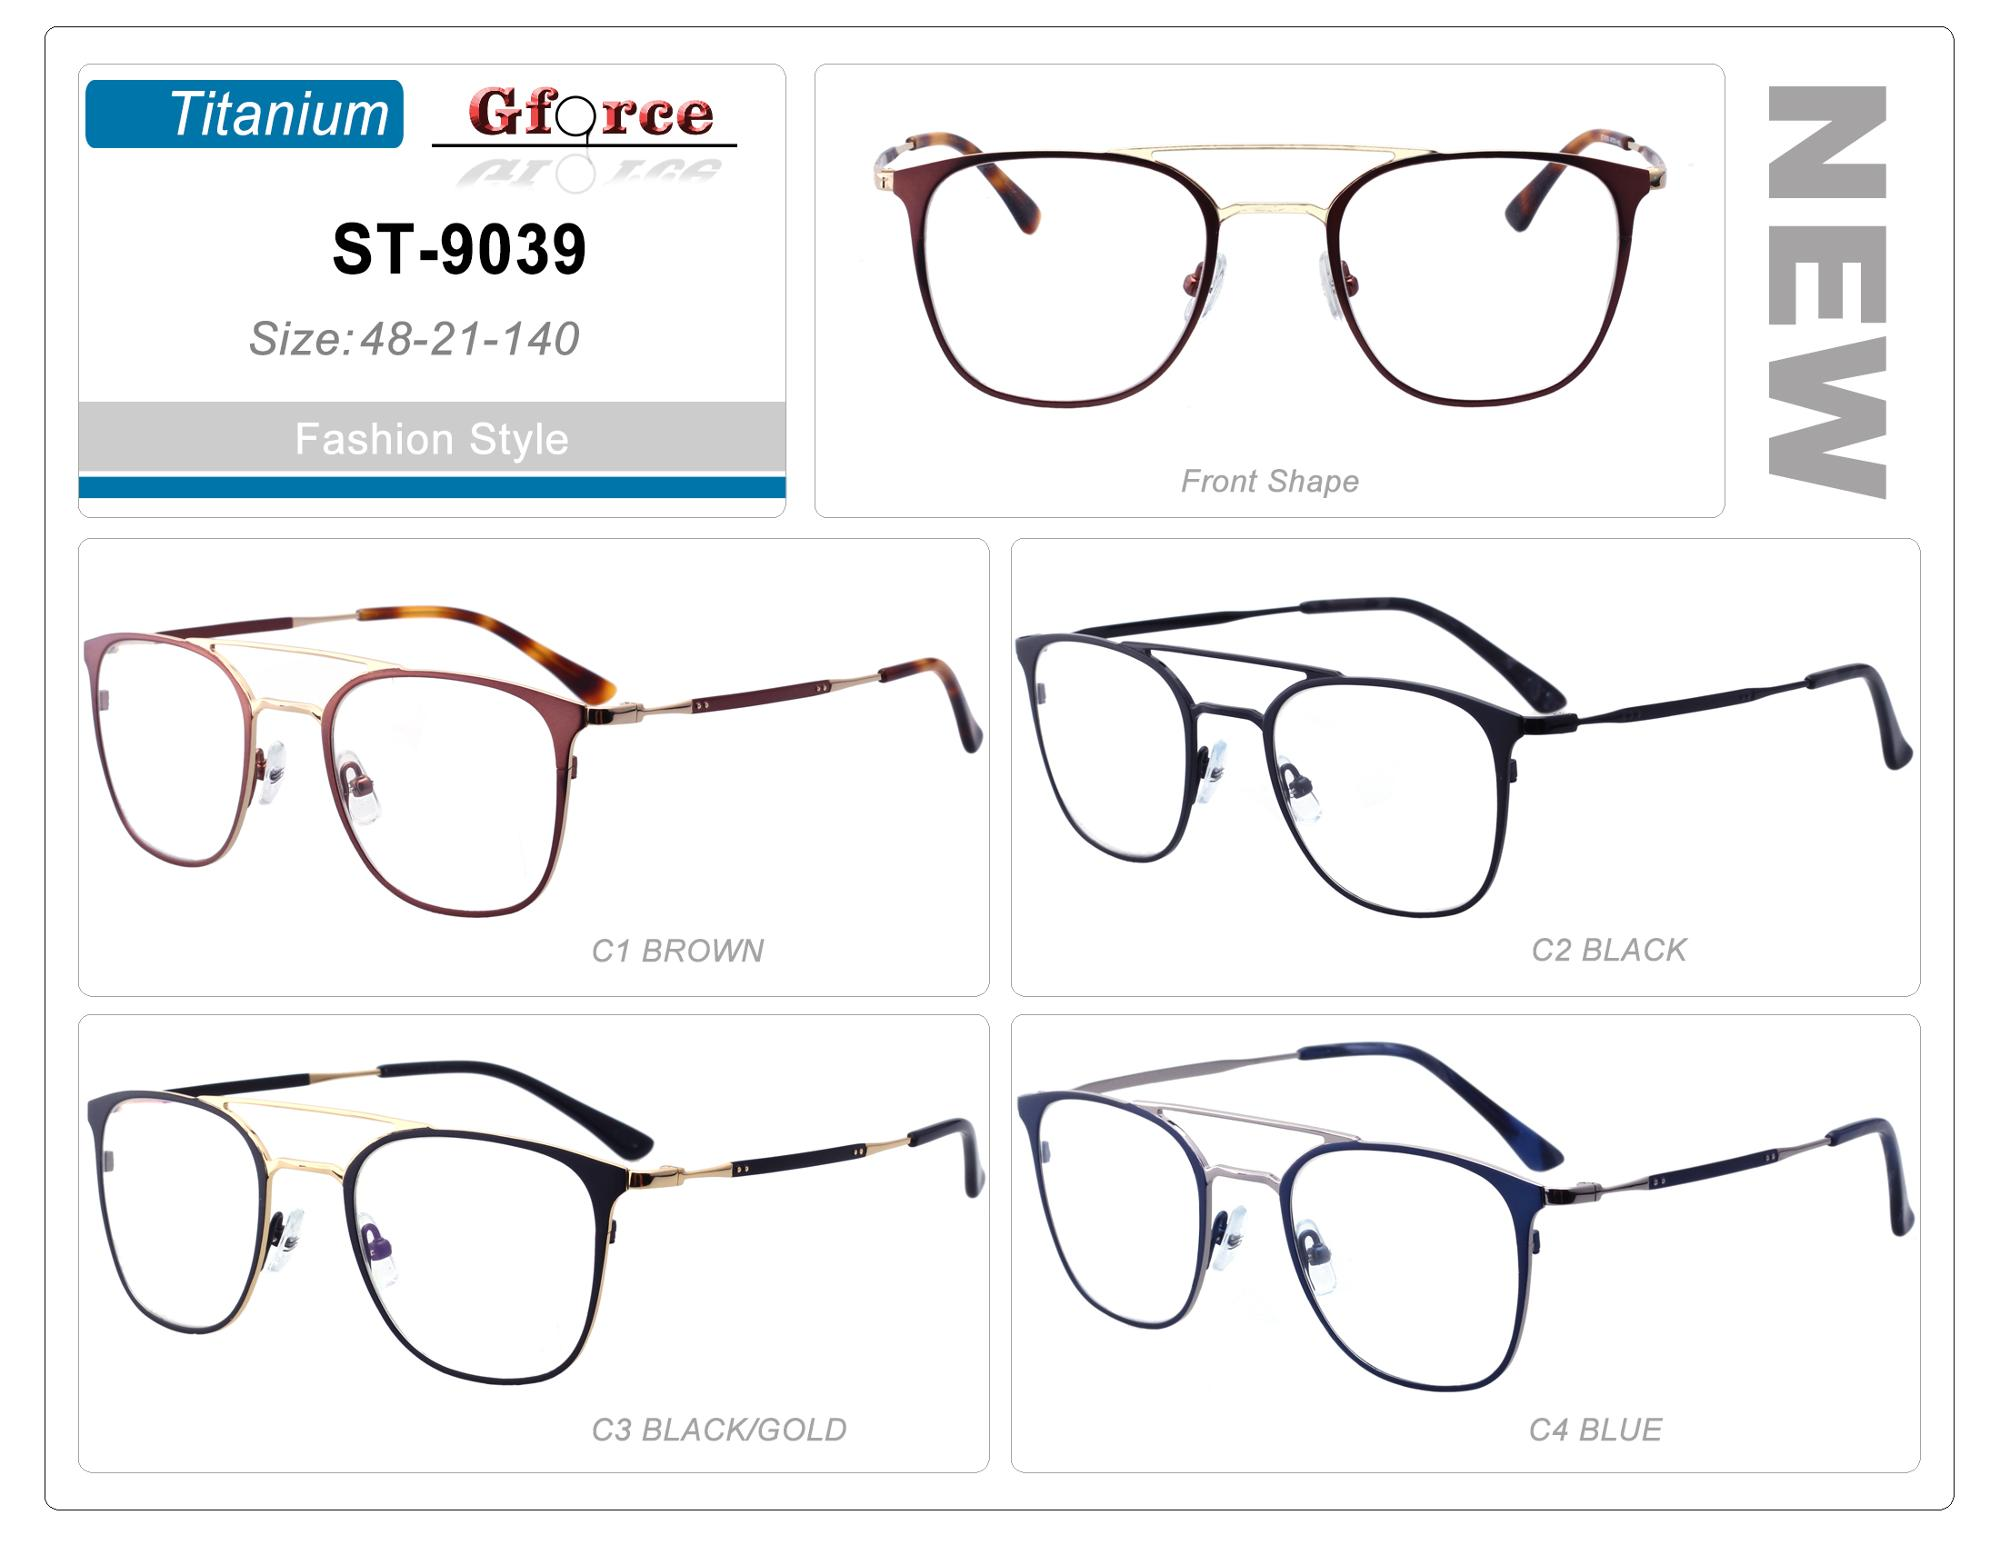 New Titanium reading optical Eyeglasses Frames online china shop